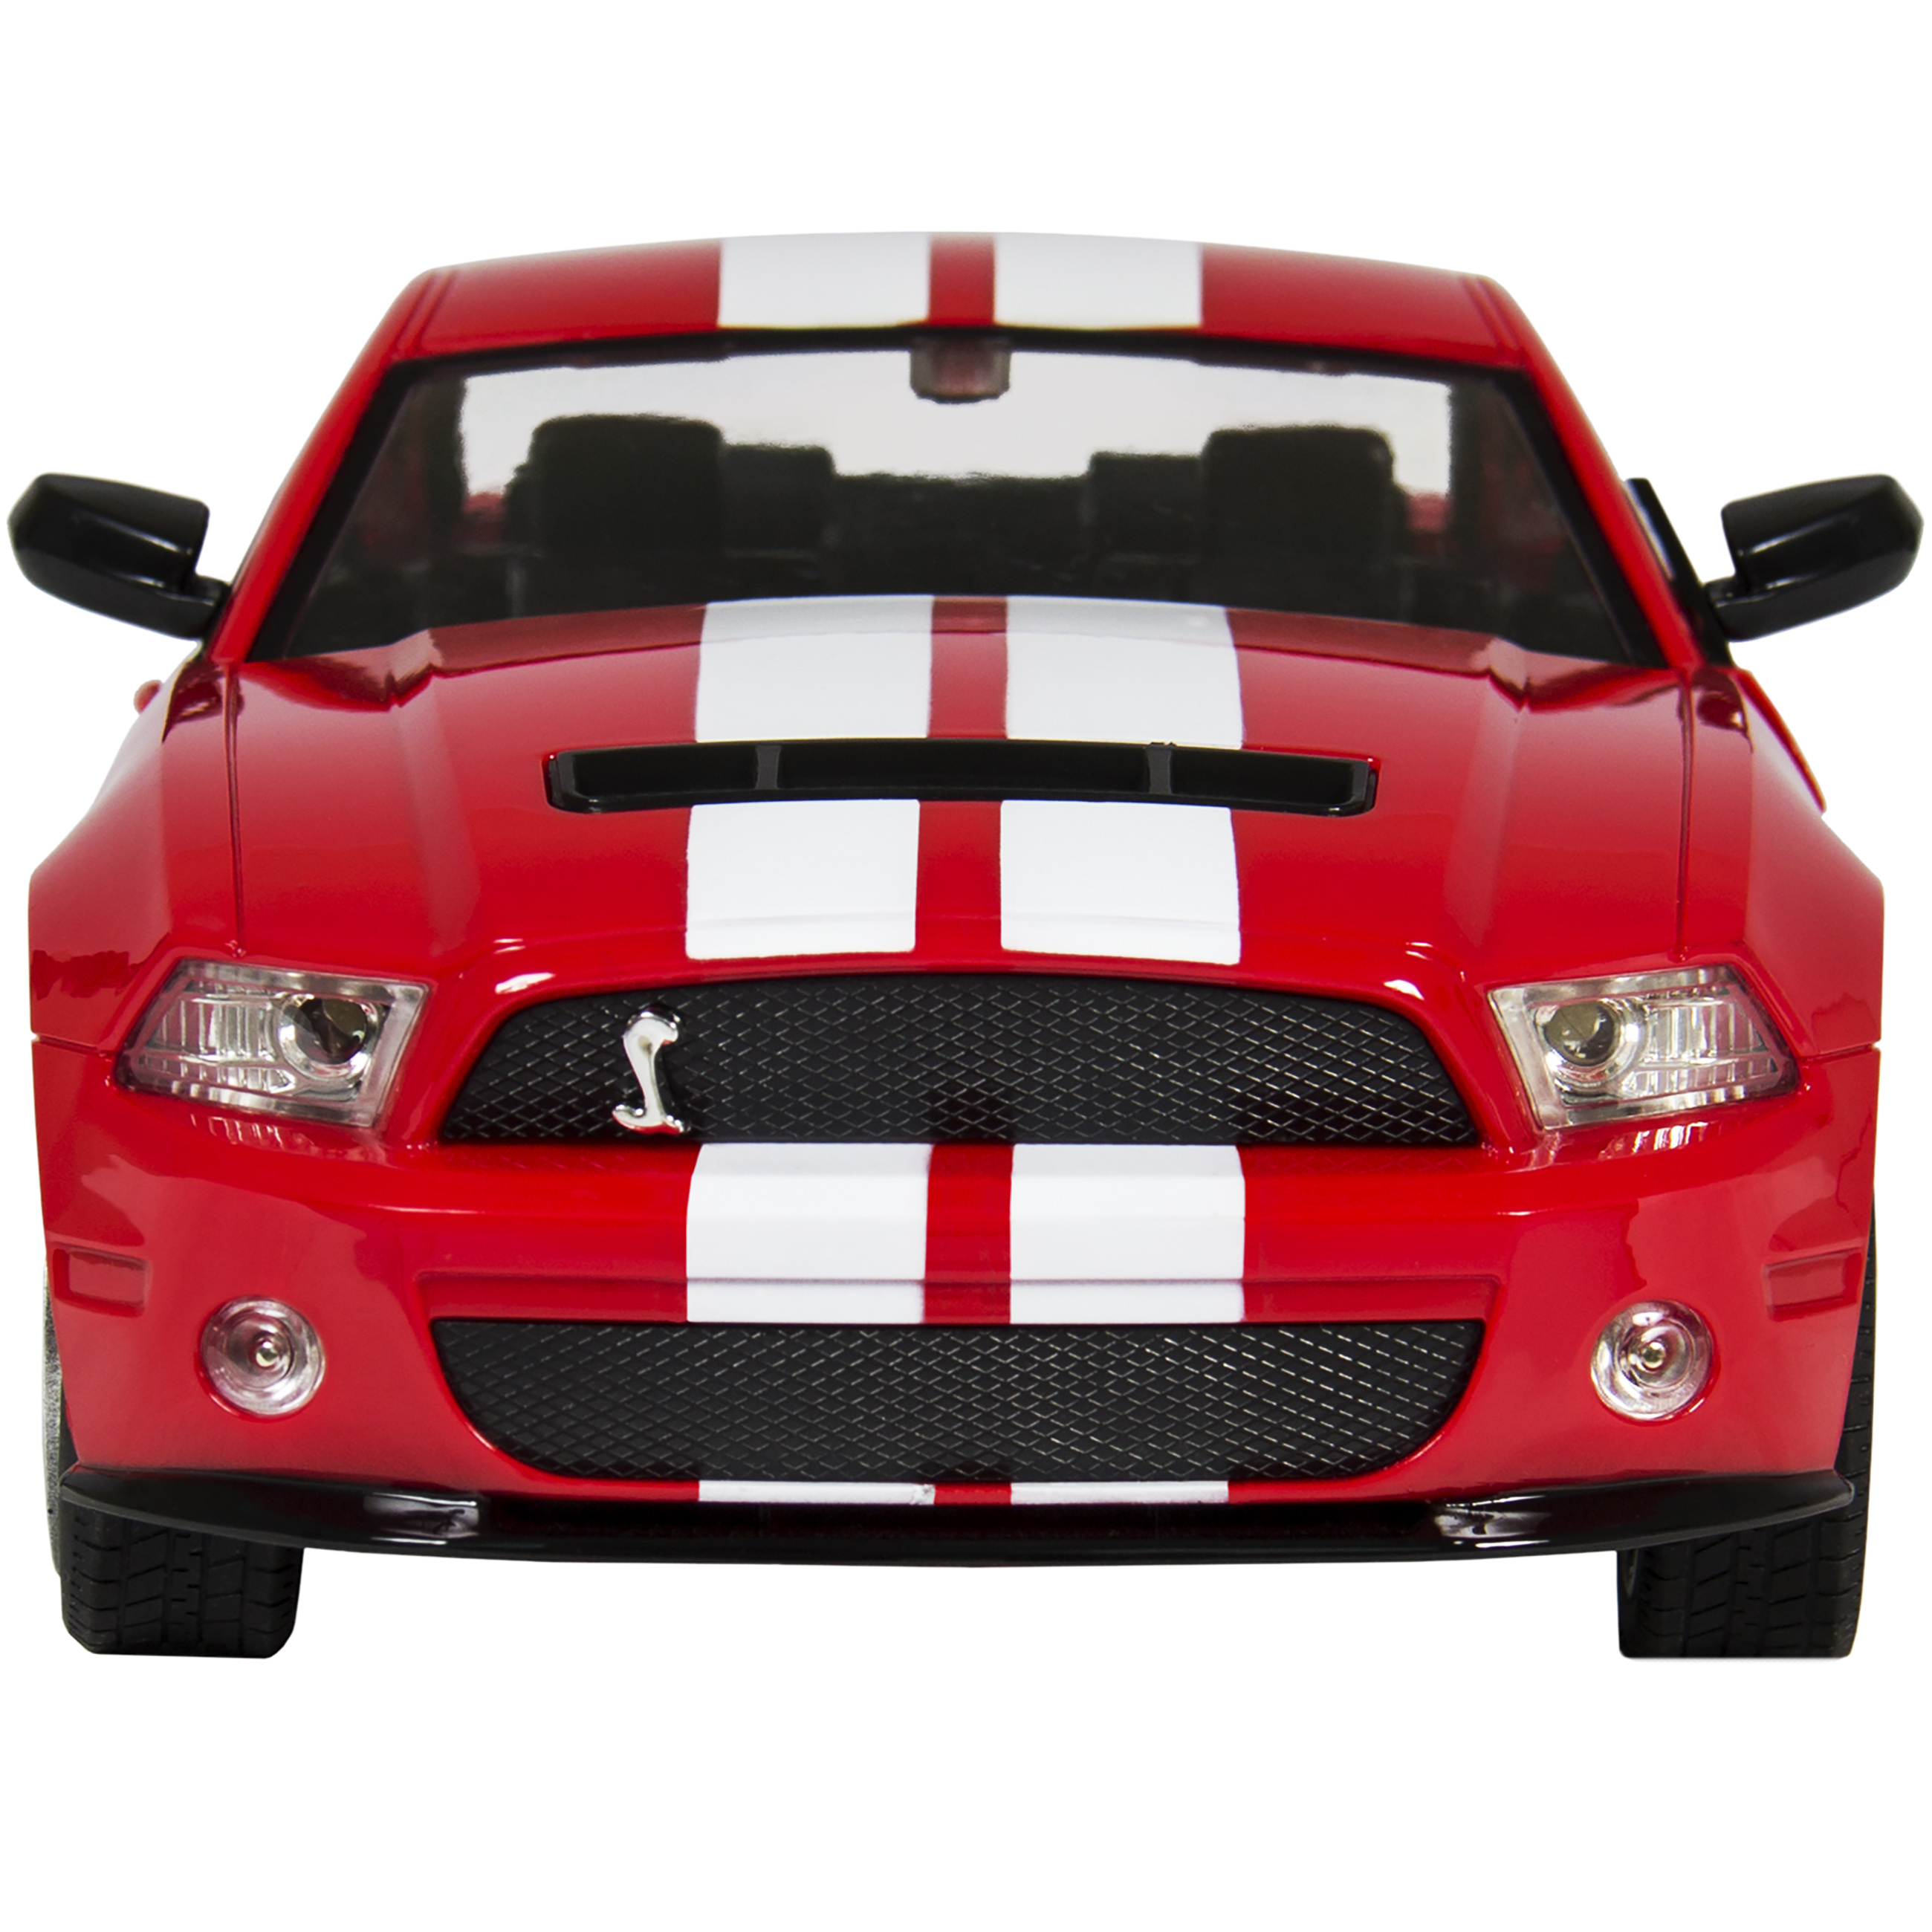 Bcp 1 14 rc ford mustang shelby gt500 gravity sensor remote control car red walmart com